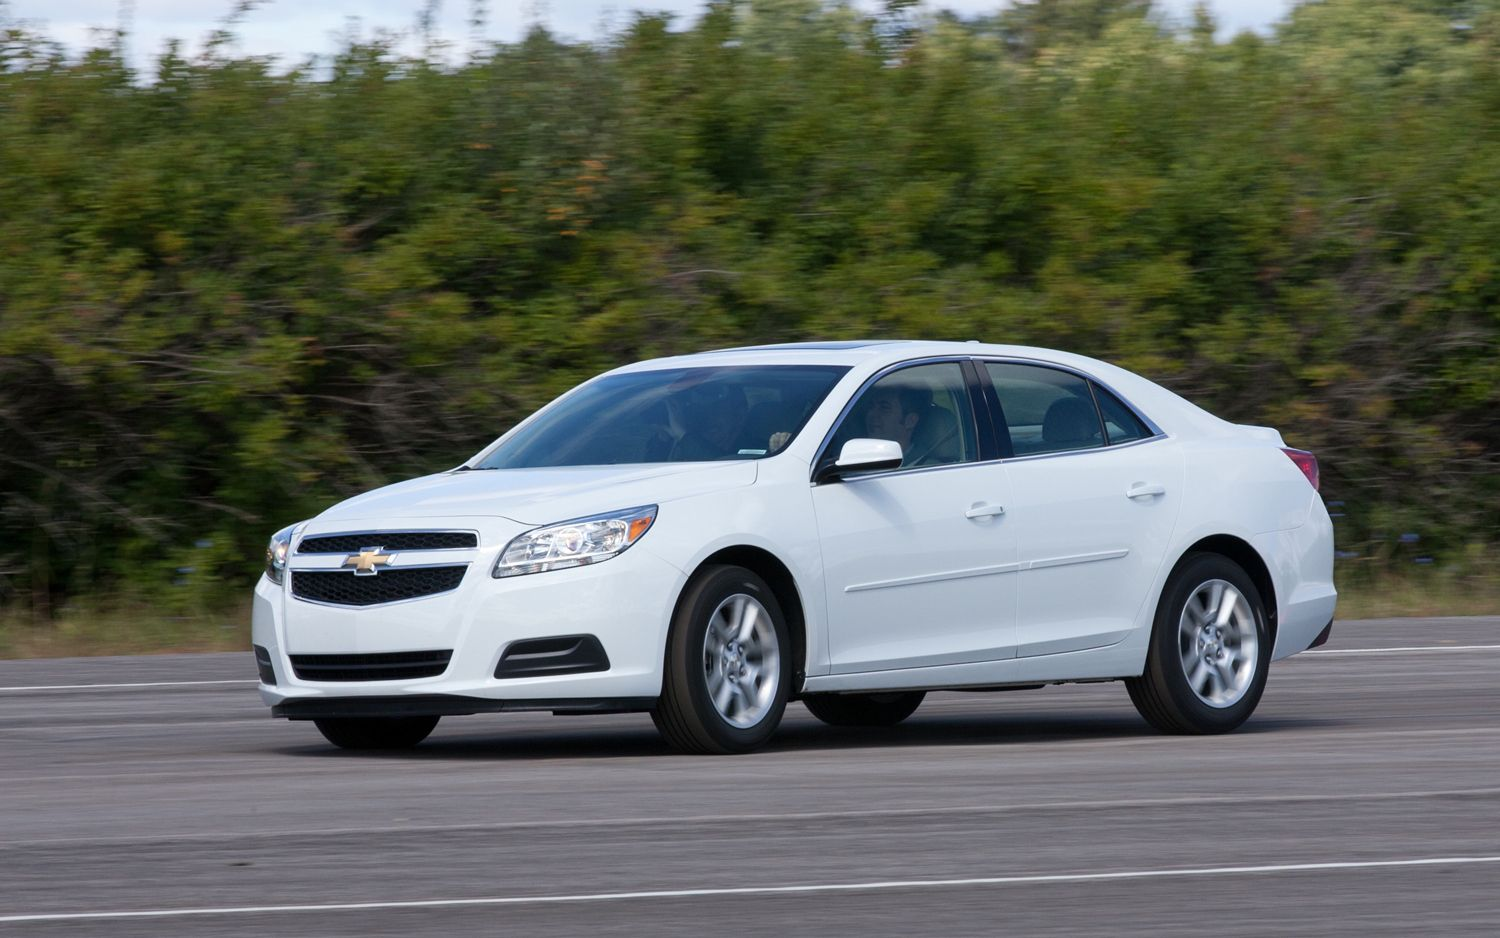 2013 chevrolet malibu turbocharged four cylinder rated at. Black Bedroom Furniture Sets. Home Design Ideas